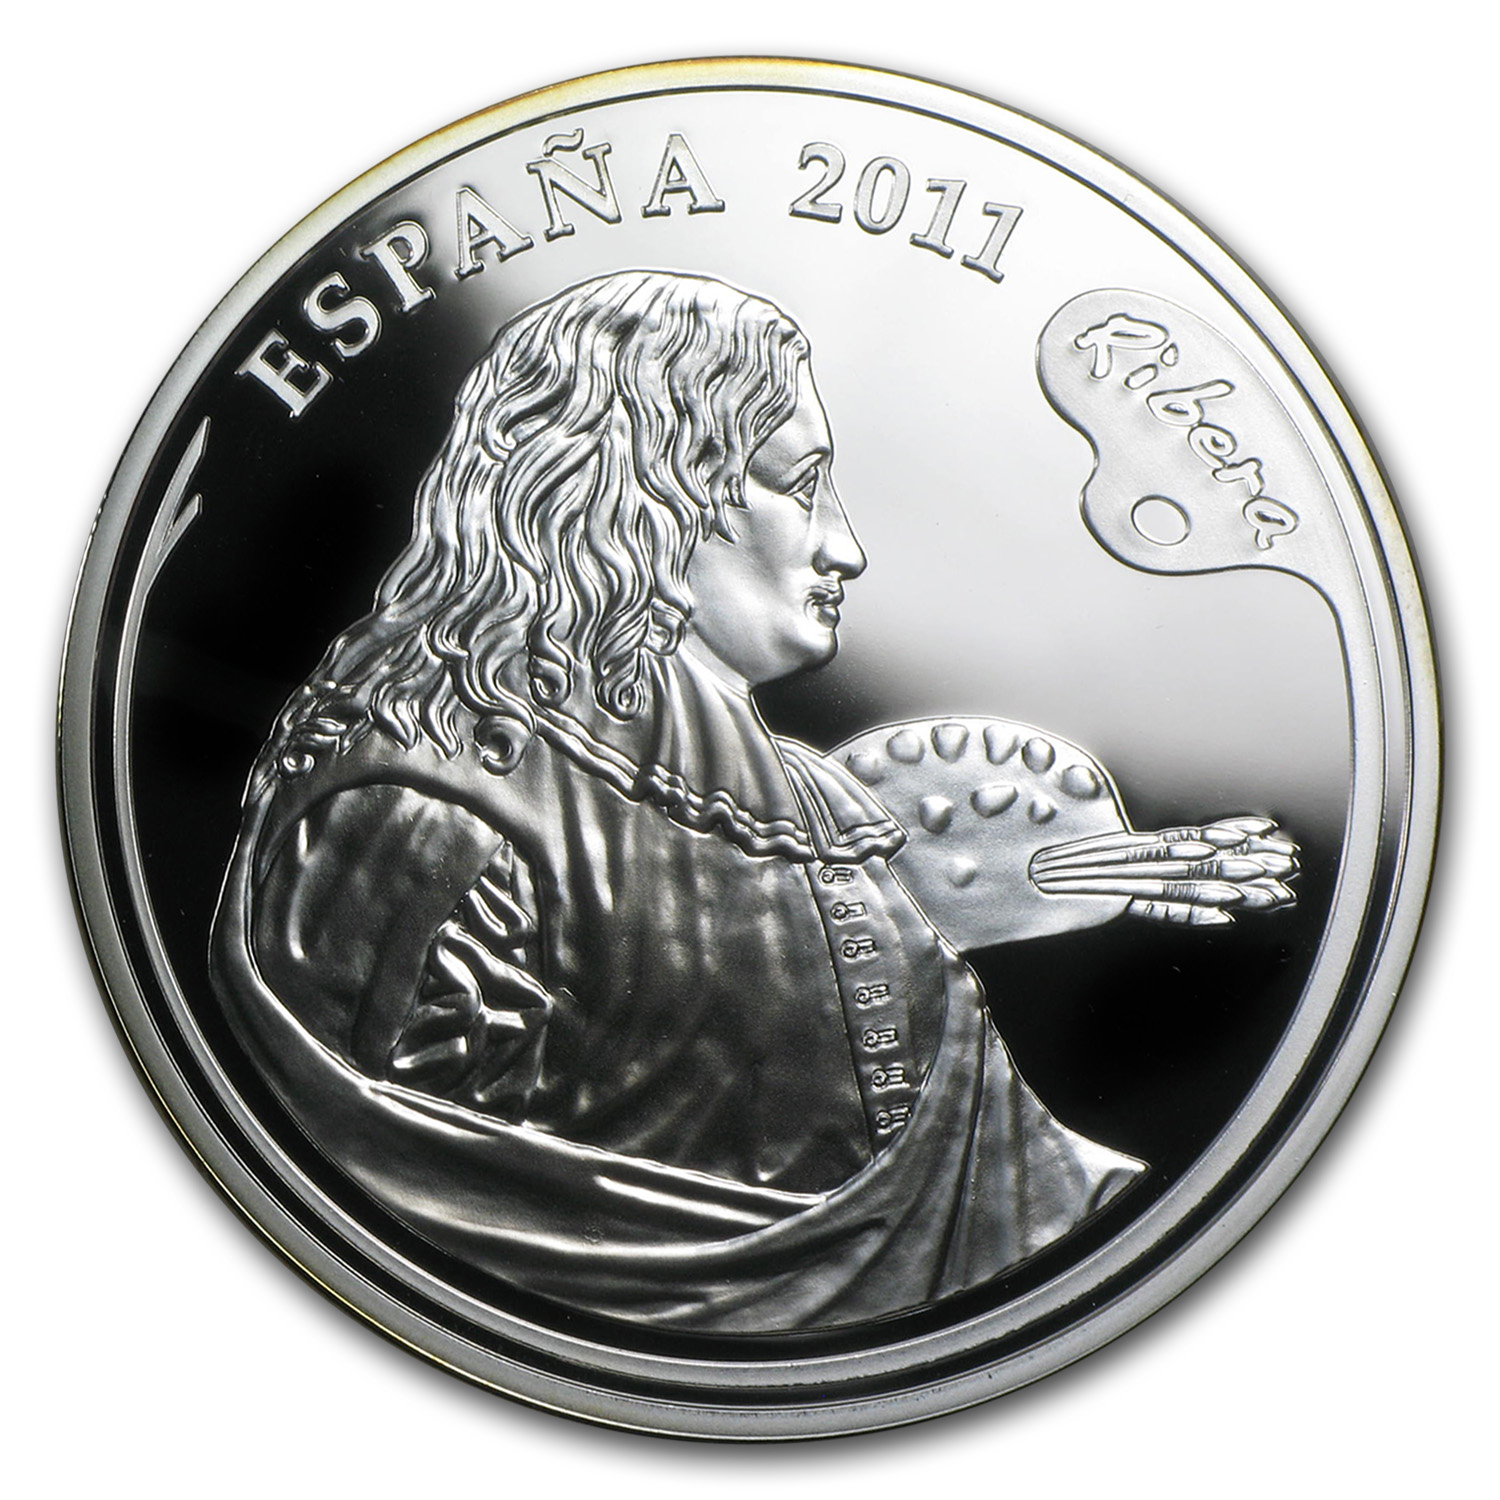 2011 Proof Silver €10 Ribera Painters IV